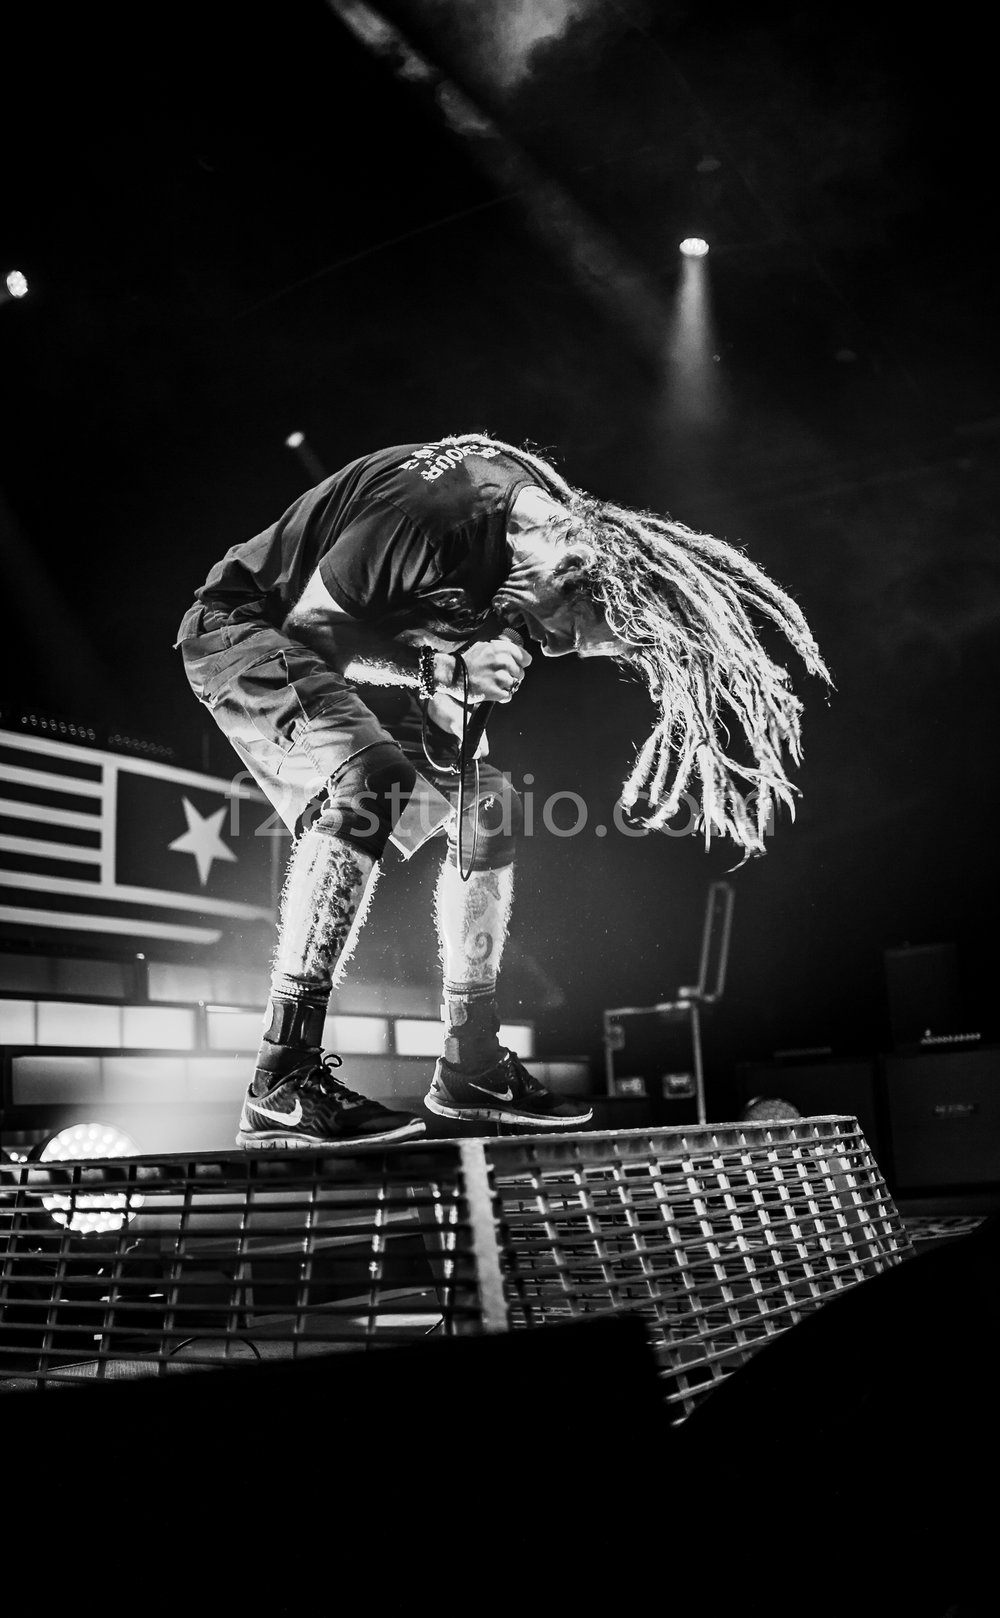 Music - Check out our pictures of Lamb of God from their tour stop in Raleigh NC!